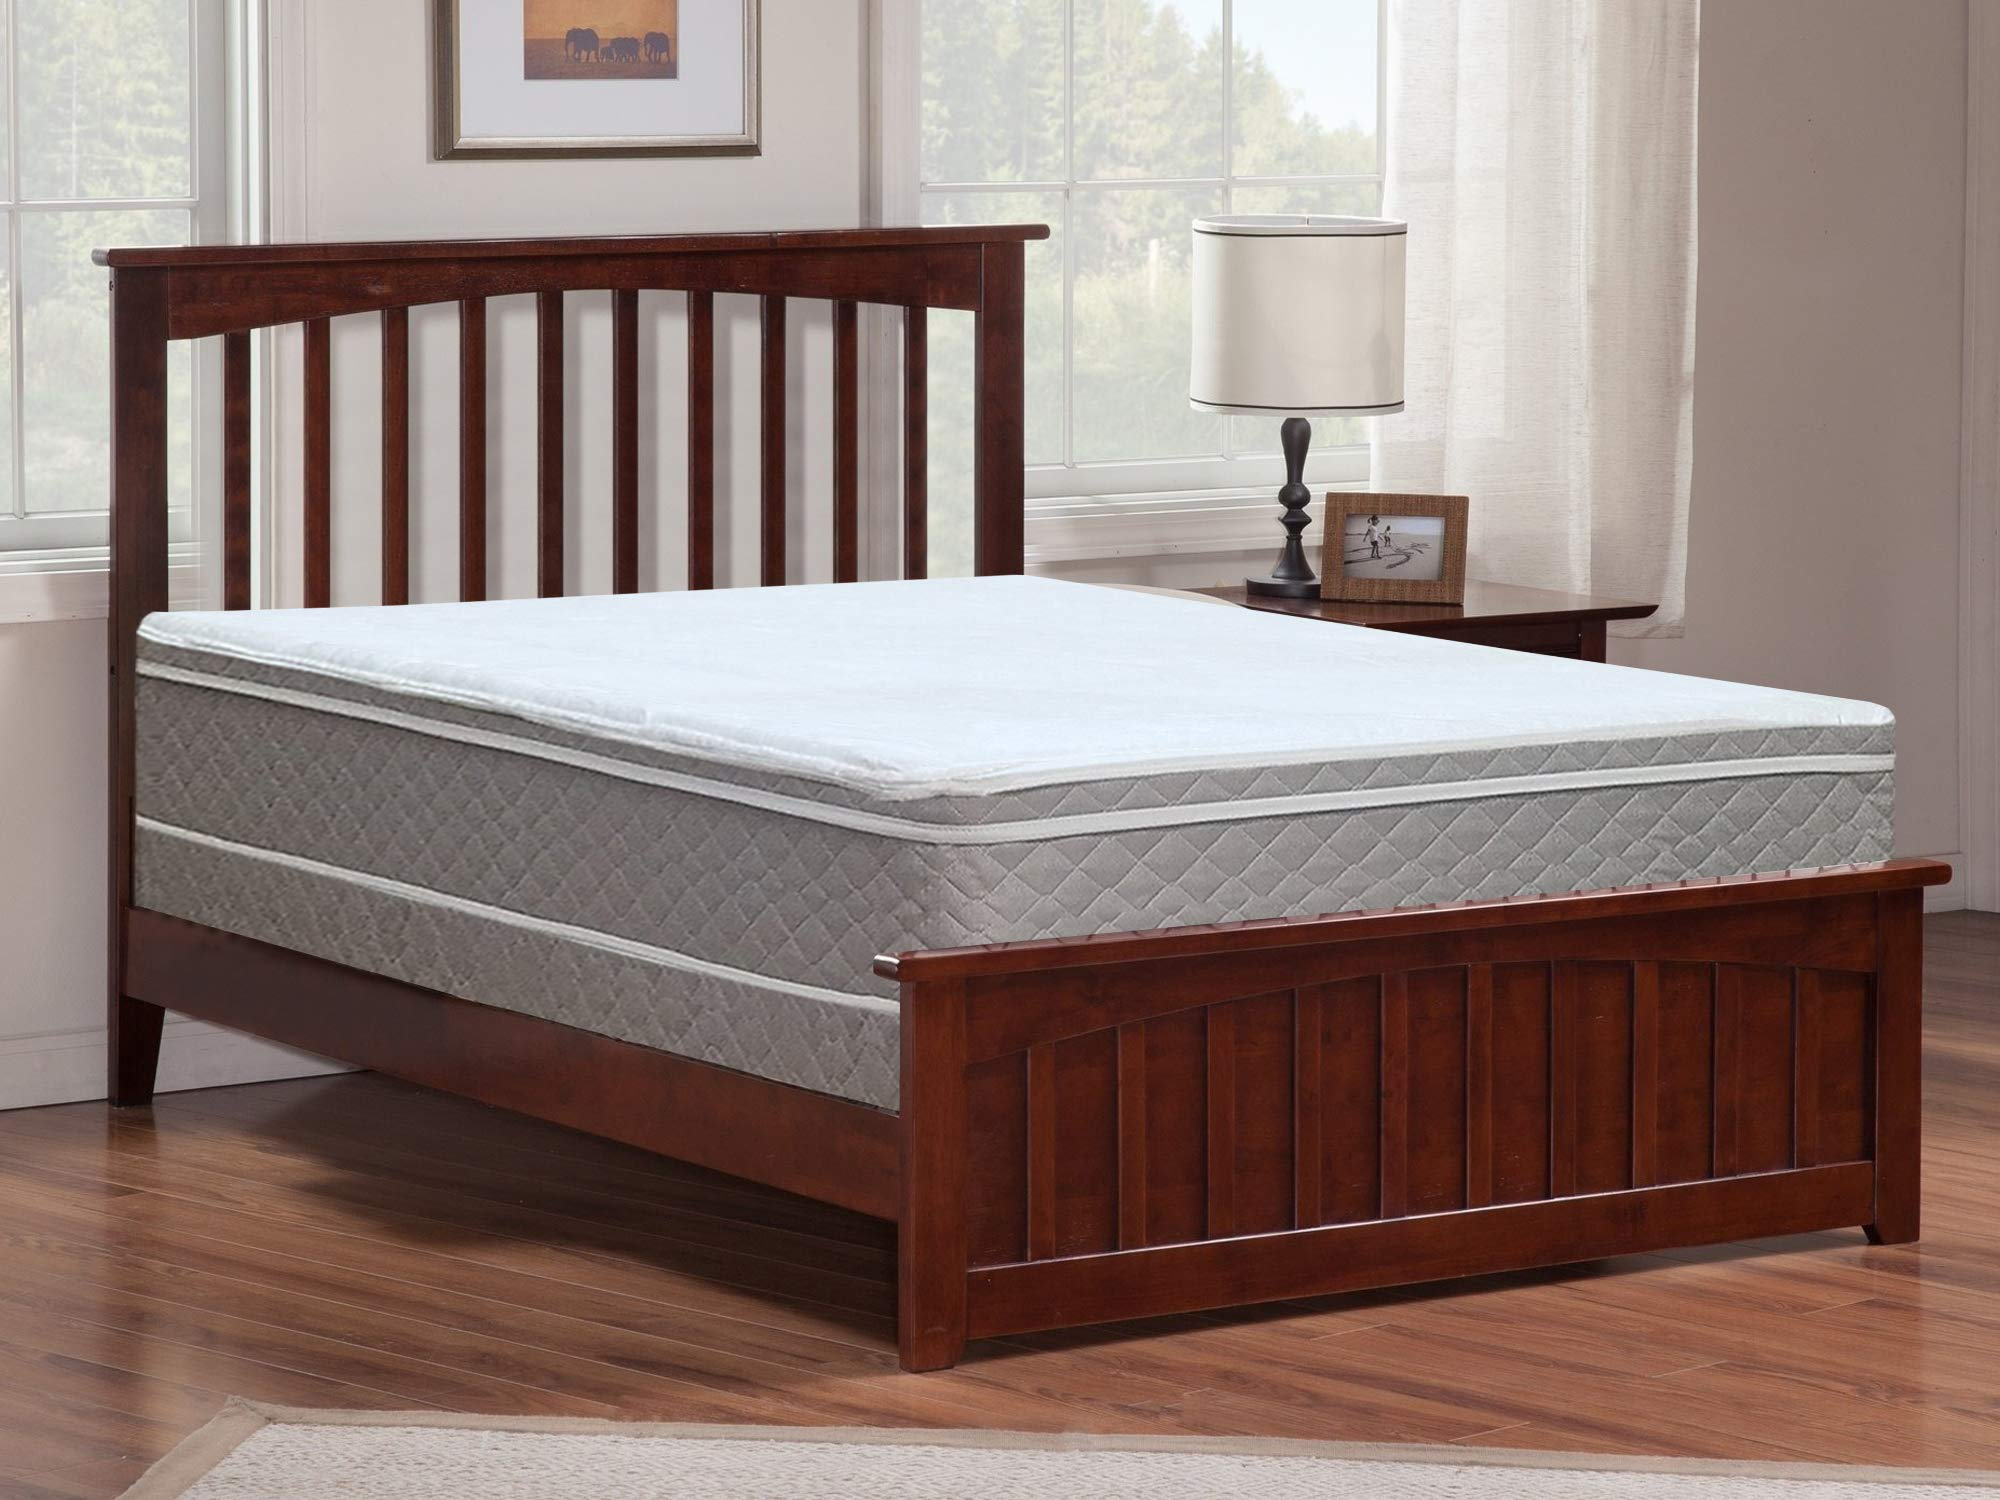 Mayton 10'' Twin Size Mattress And Box Spring- Pillow Top Euro Top Natural Sleep Solution/Soft & Supportive,No Assembly Required 39''x 74'' by Mayton